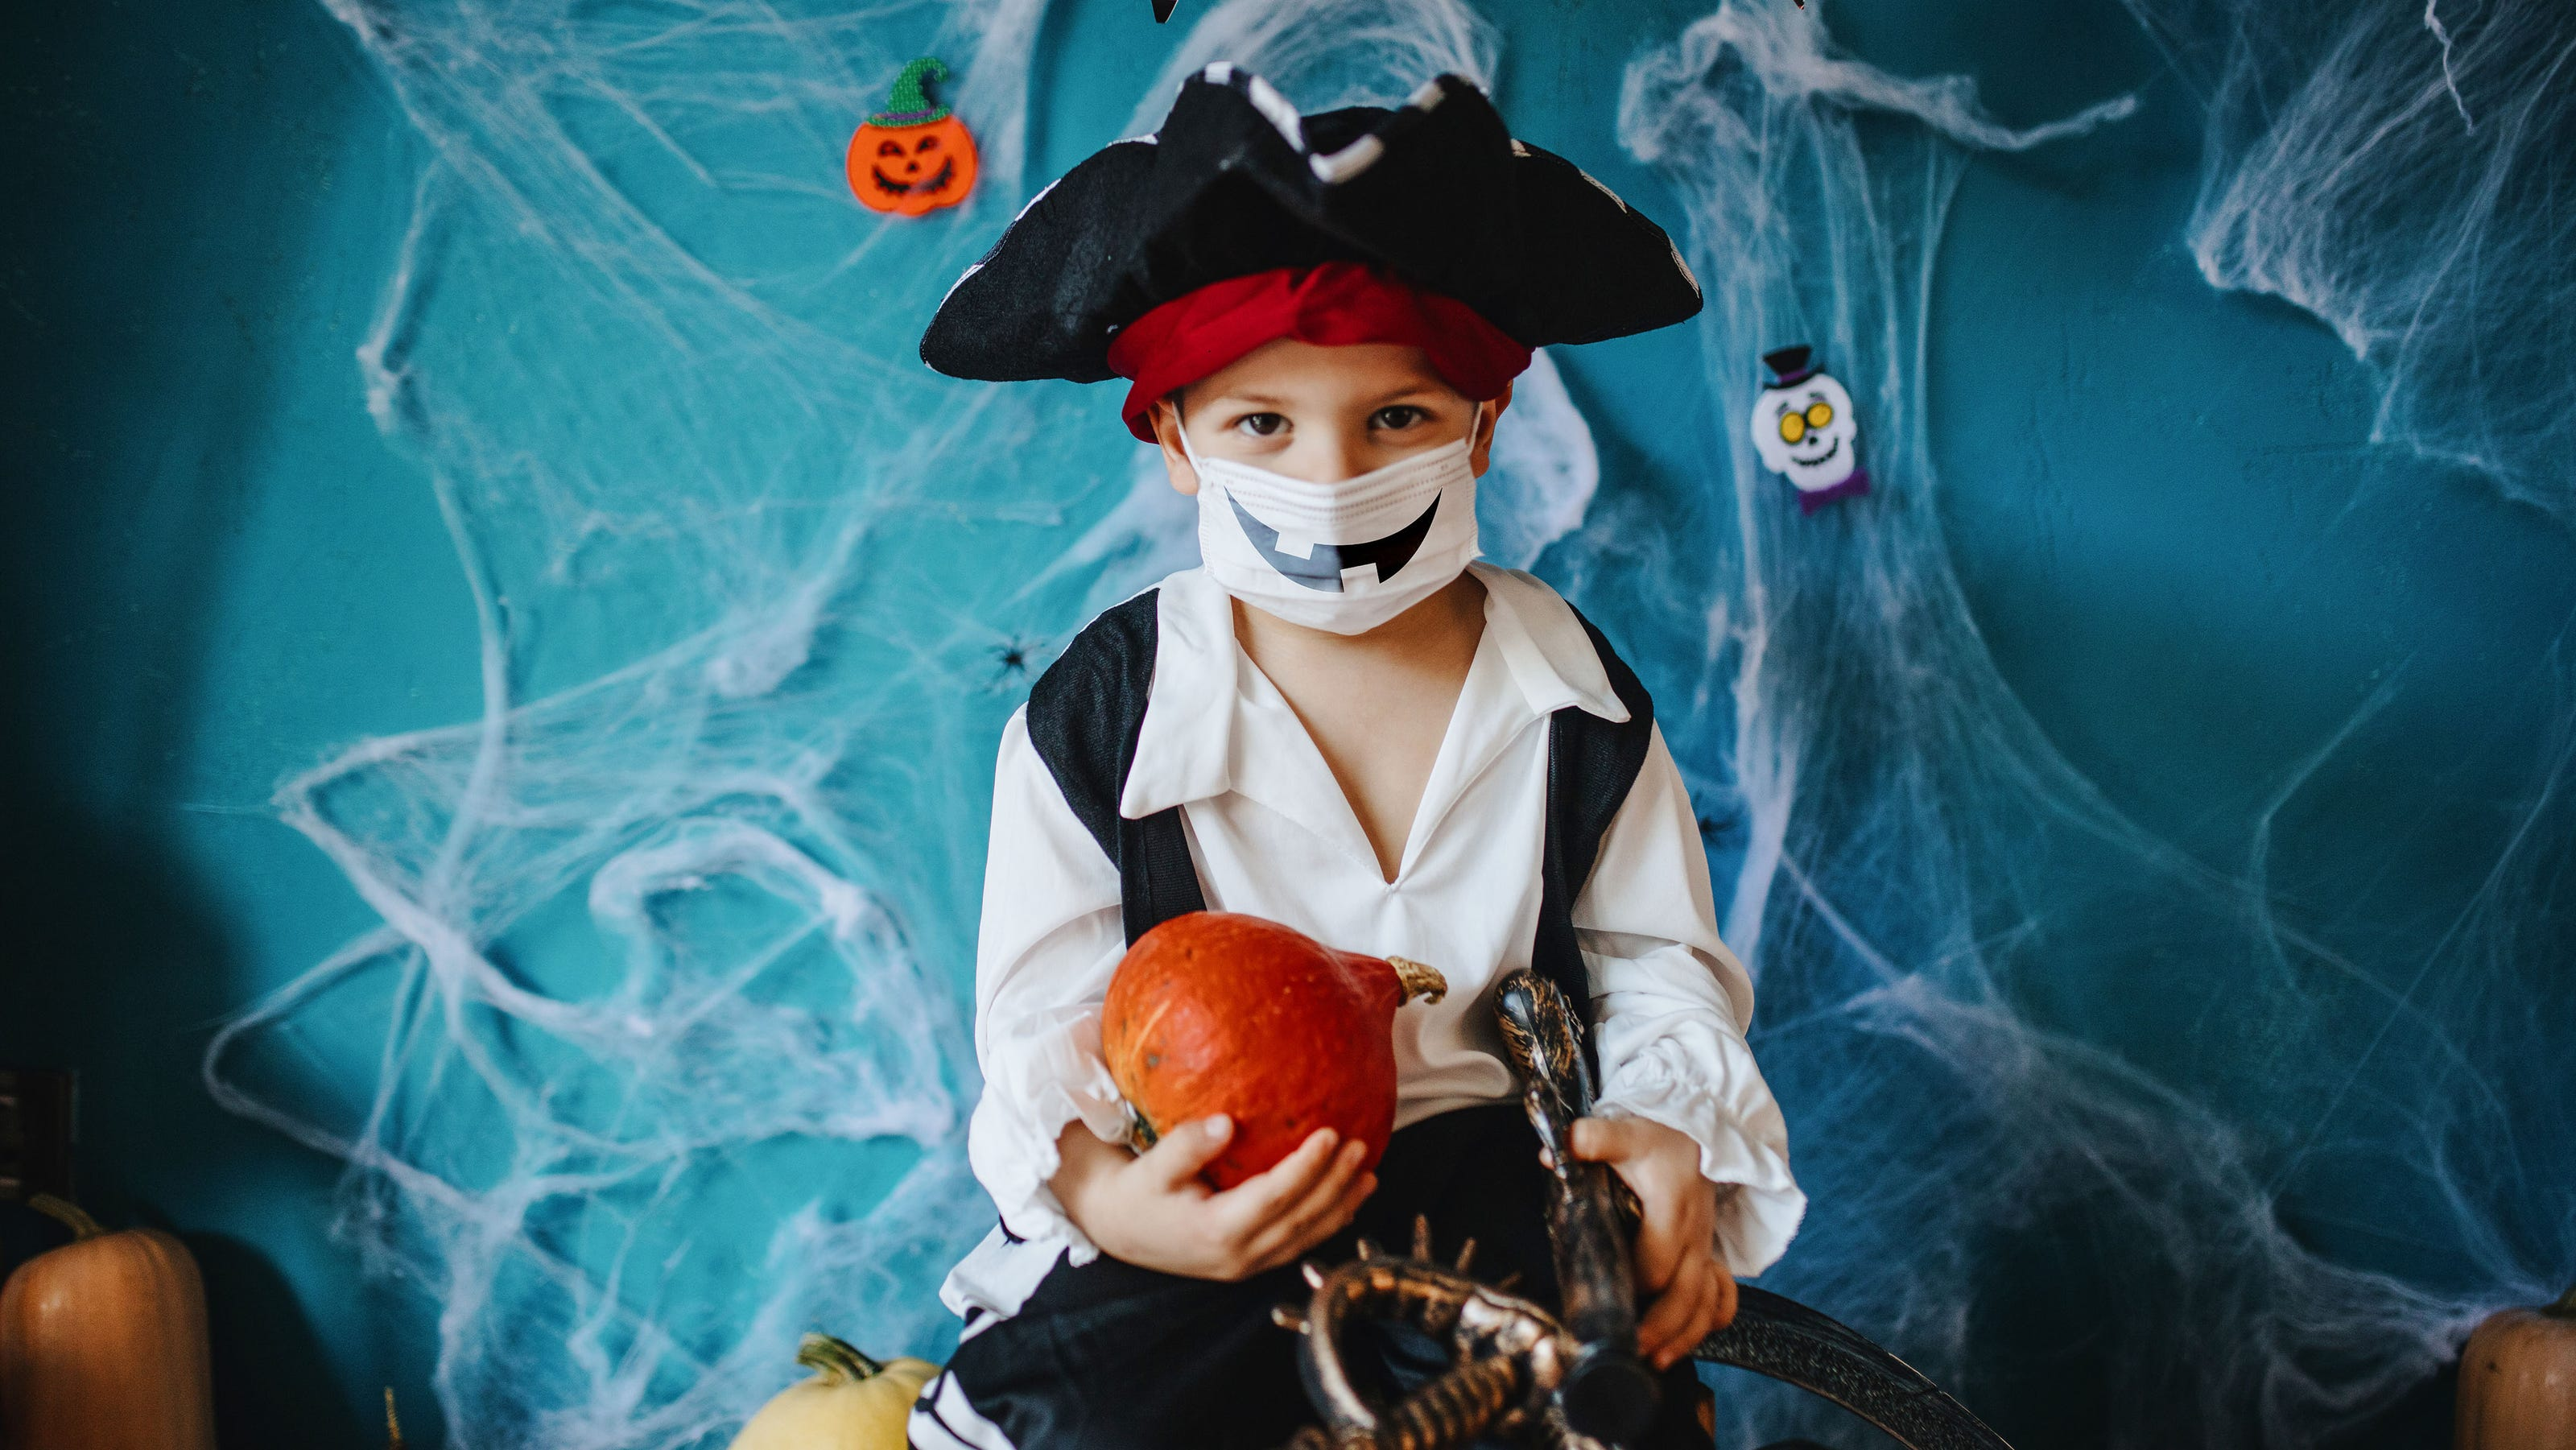 Halloween 2020: Fall festivals, pumpkin patches, parties ...